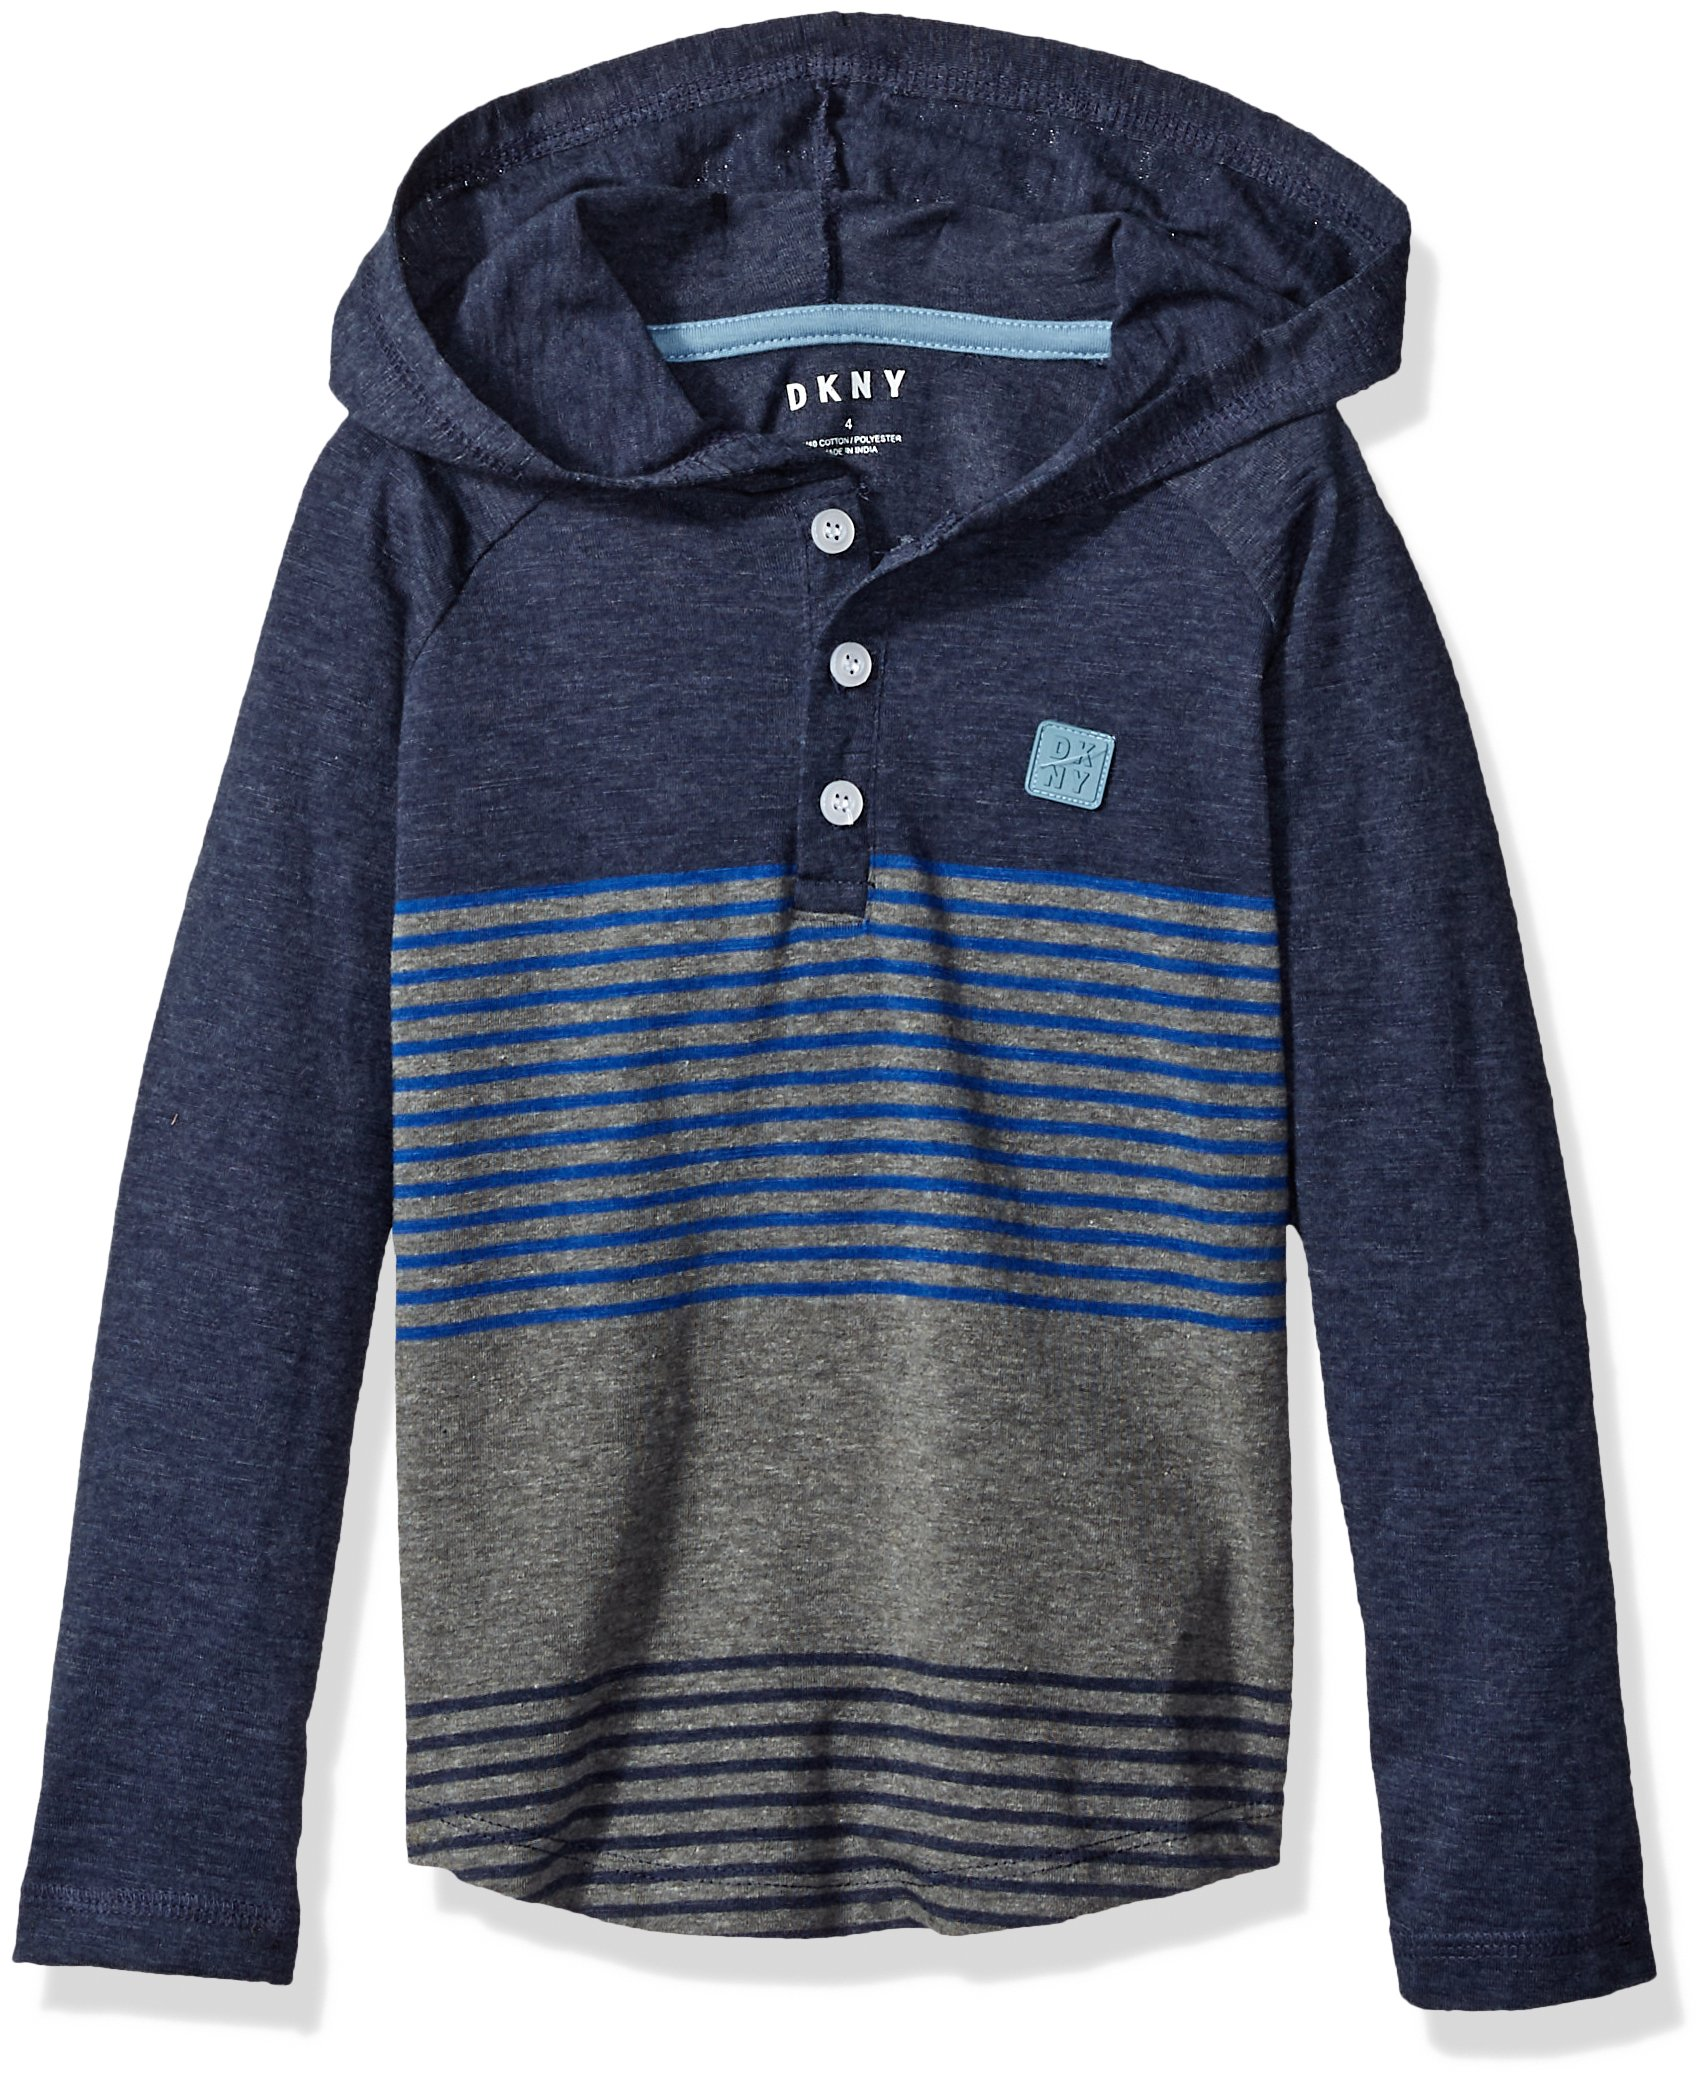 DKNY Little Boys' Long Sleeve Color Block and Stripe Hooded Henley Shirt, Peacoat, 4 by DKNY (Image #1)